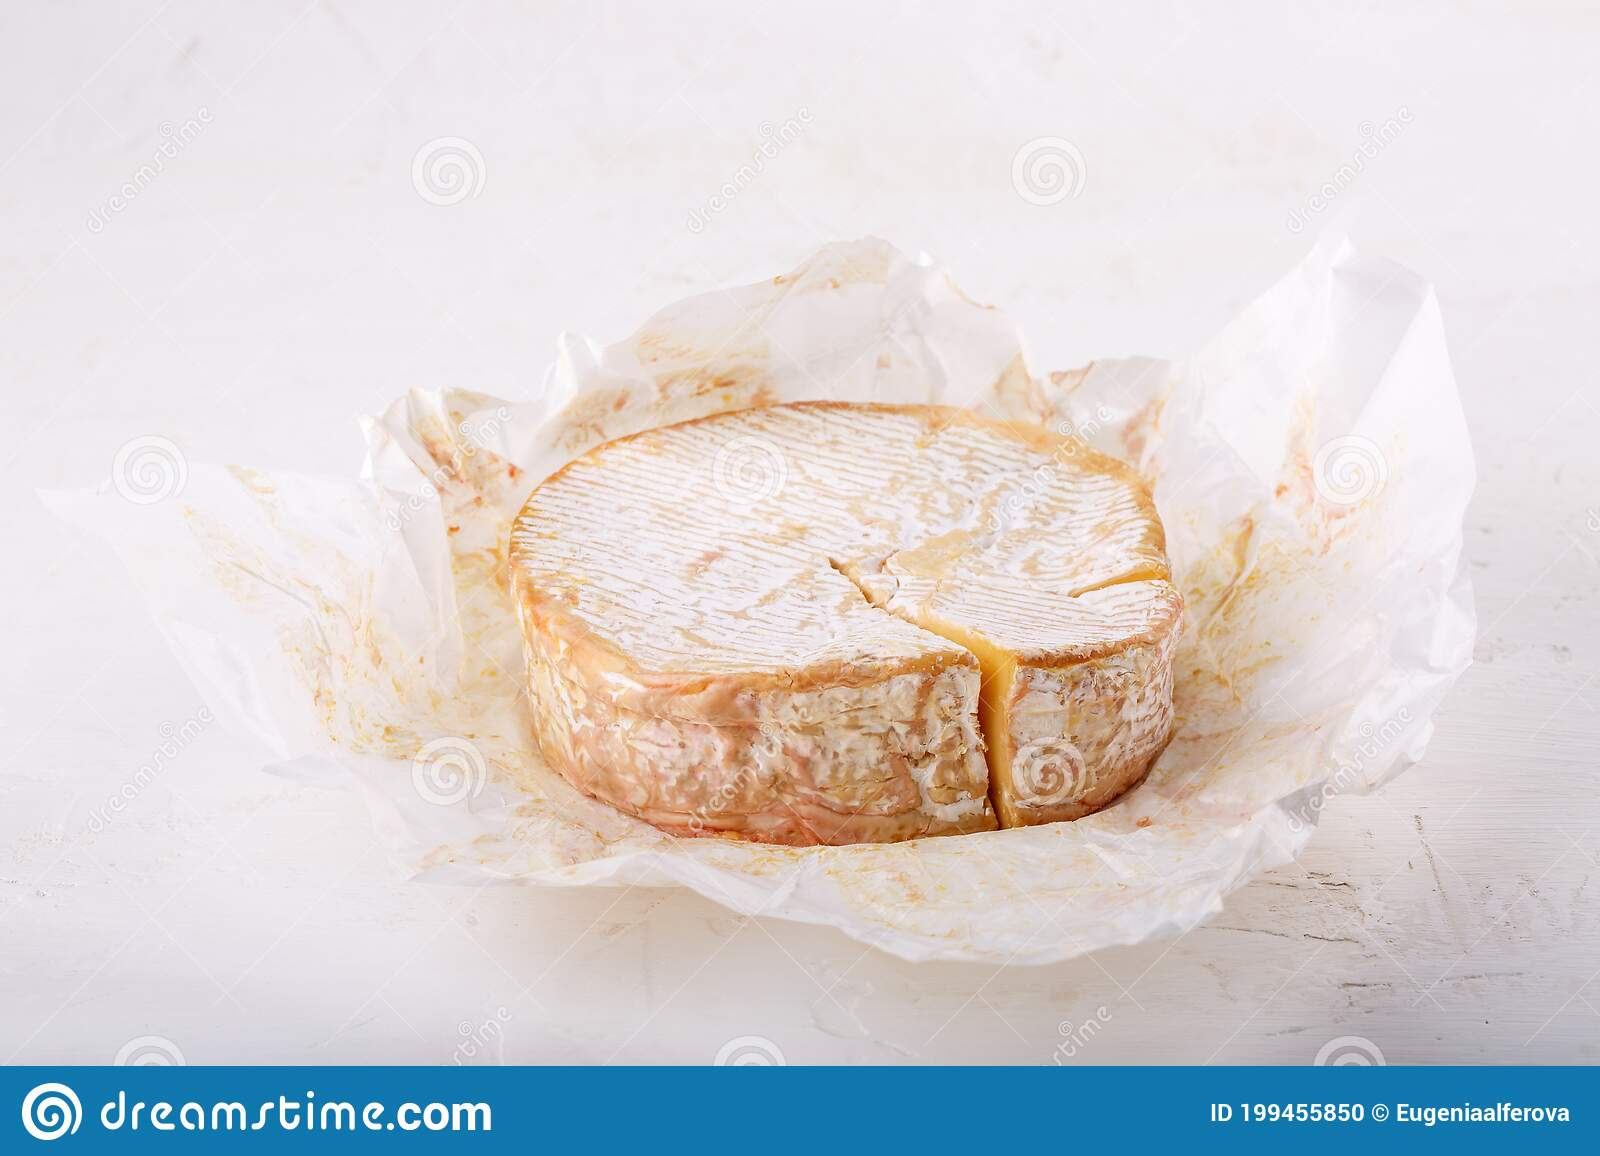 Camembert Cheese On White Soft French Cow S Milk Cheese From Normandy Stock Photo Image Of Meal Nutrition 199455850